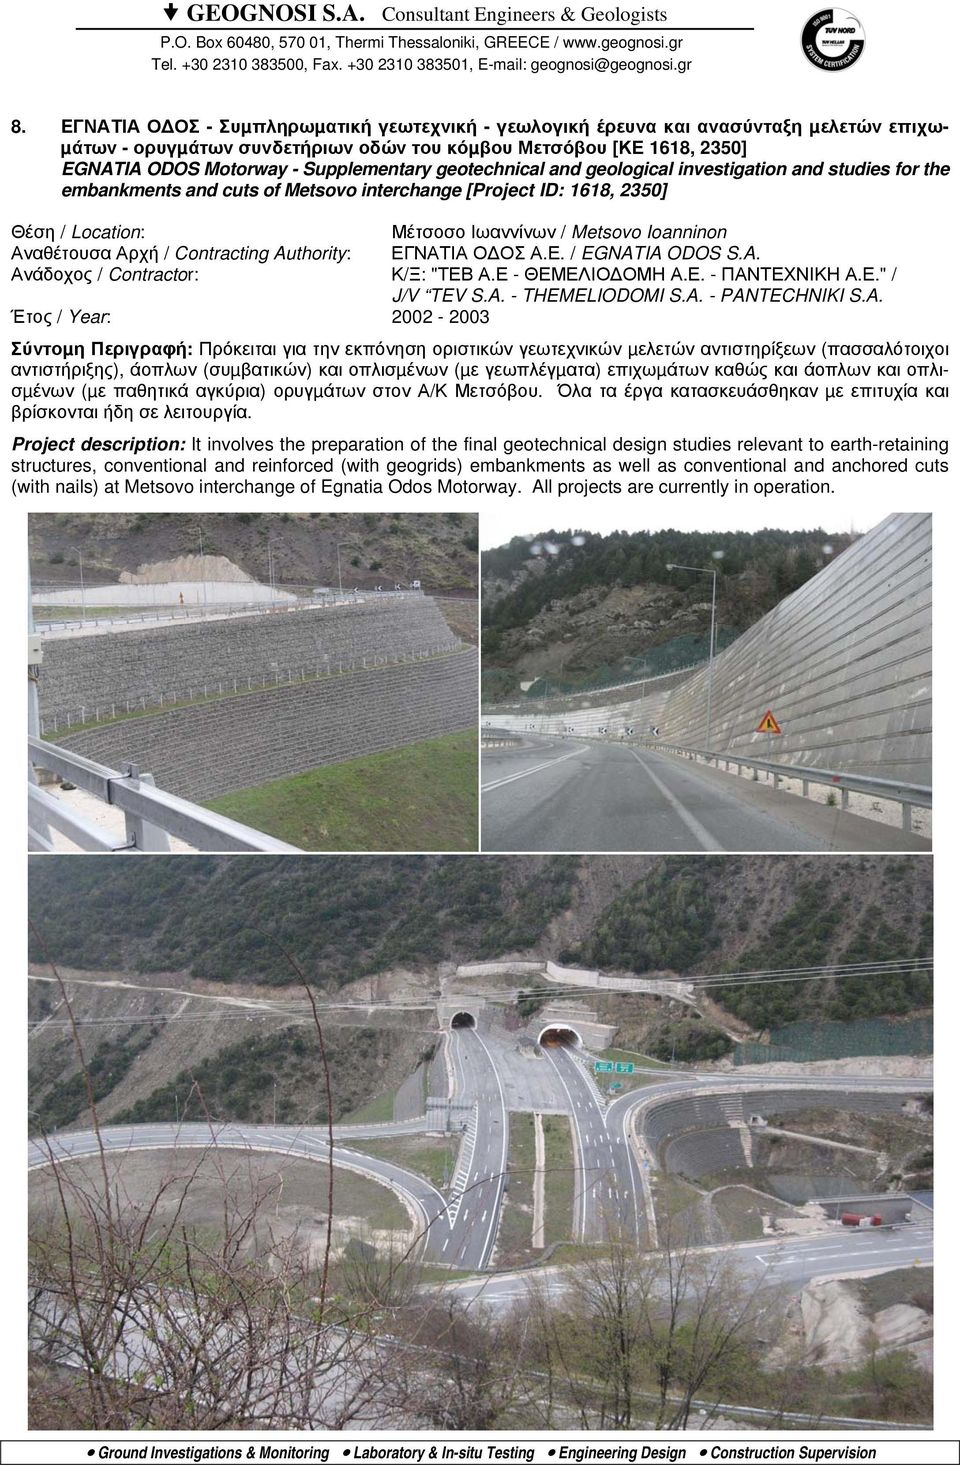 geotechnical and geological investigation and studies for the embankments and cuts of Metsovo interchange [Project ID: 1618, 2350] Θέση / Location: Μέτσοσο Ιωαννίνων / Metsovo Ioanninon Αναθέτουσα